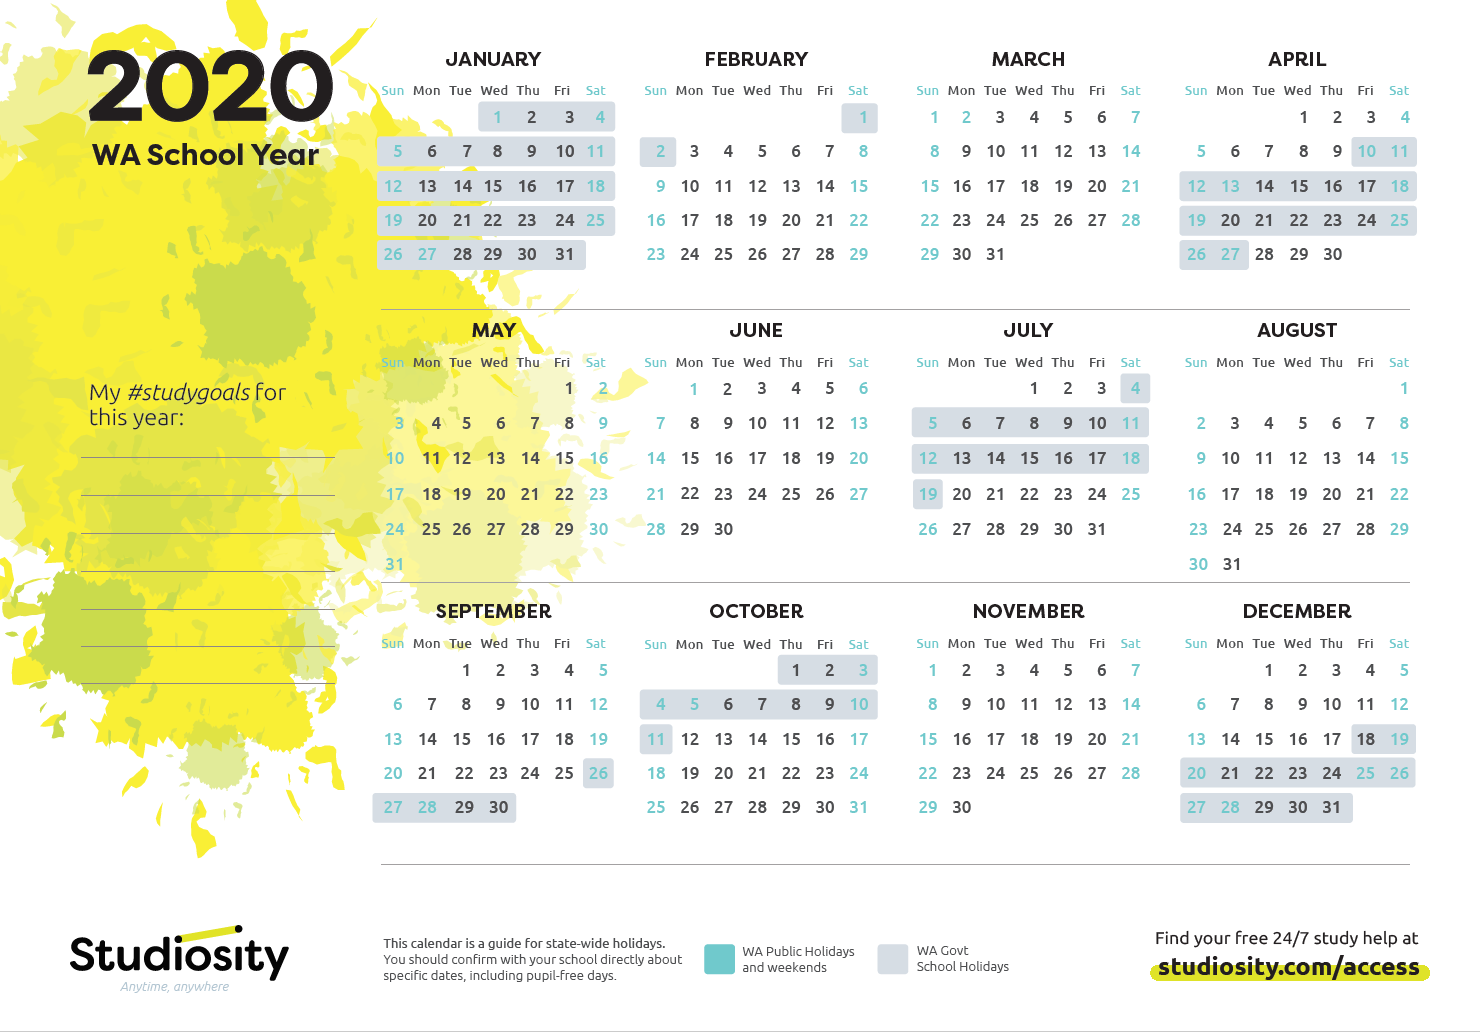 School Terms And Public Holiday Dates For Wa In 2020 throughout Fortnightly Pay Calendar 2020 Australia